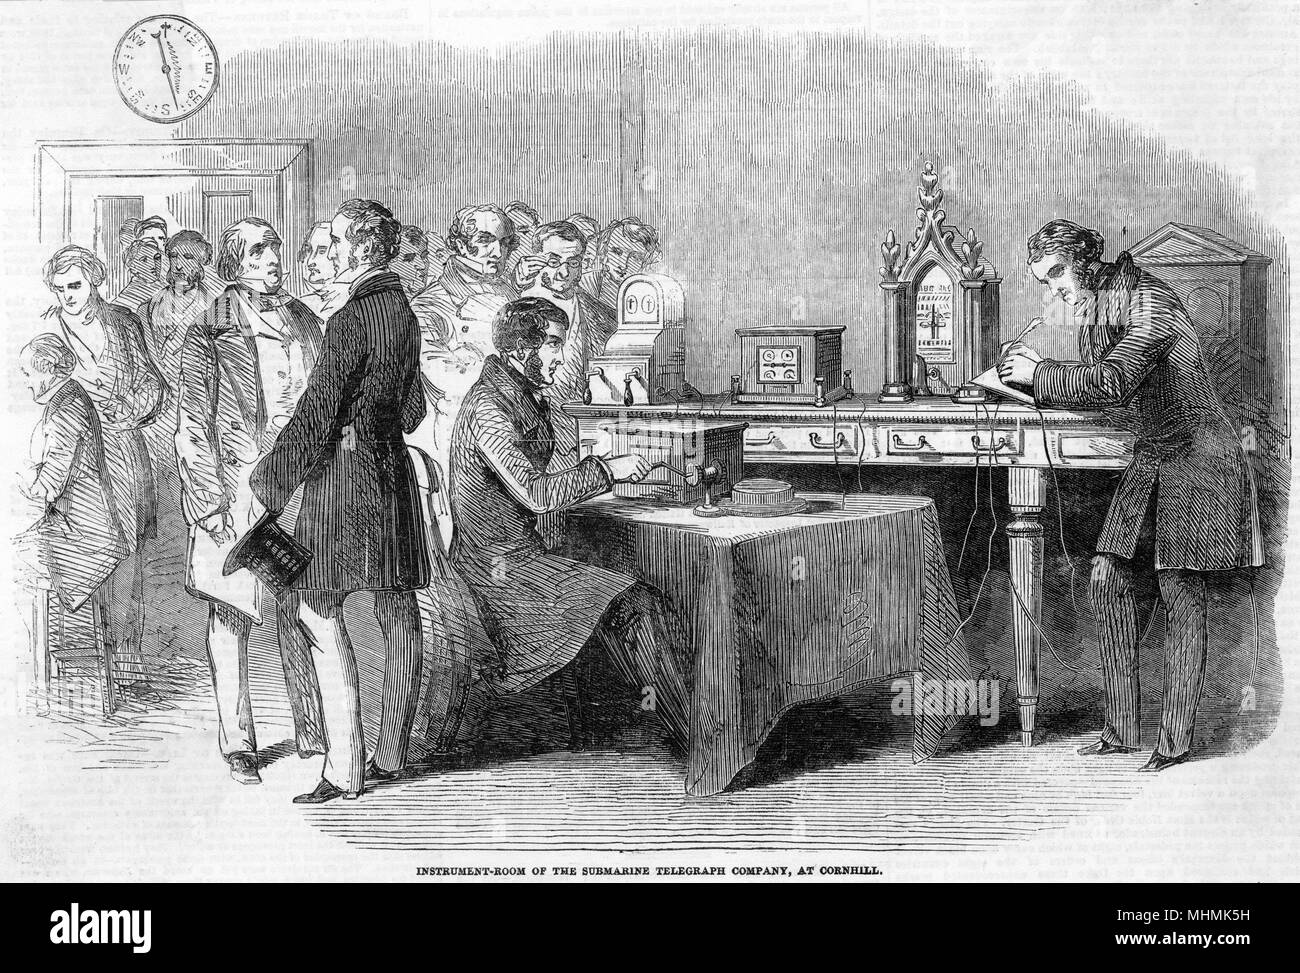 The instrument room of the Submarine Telegraph Company, Cornhill, London       Date: 1851 - Stock Image